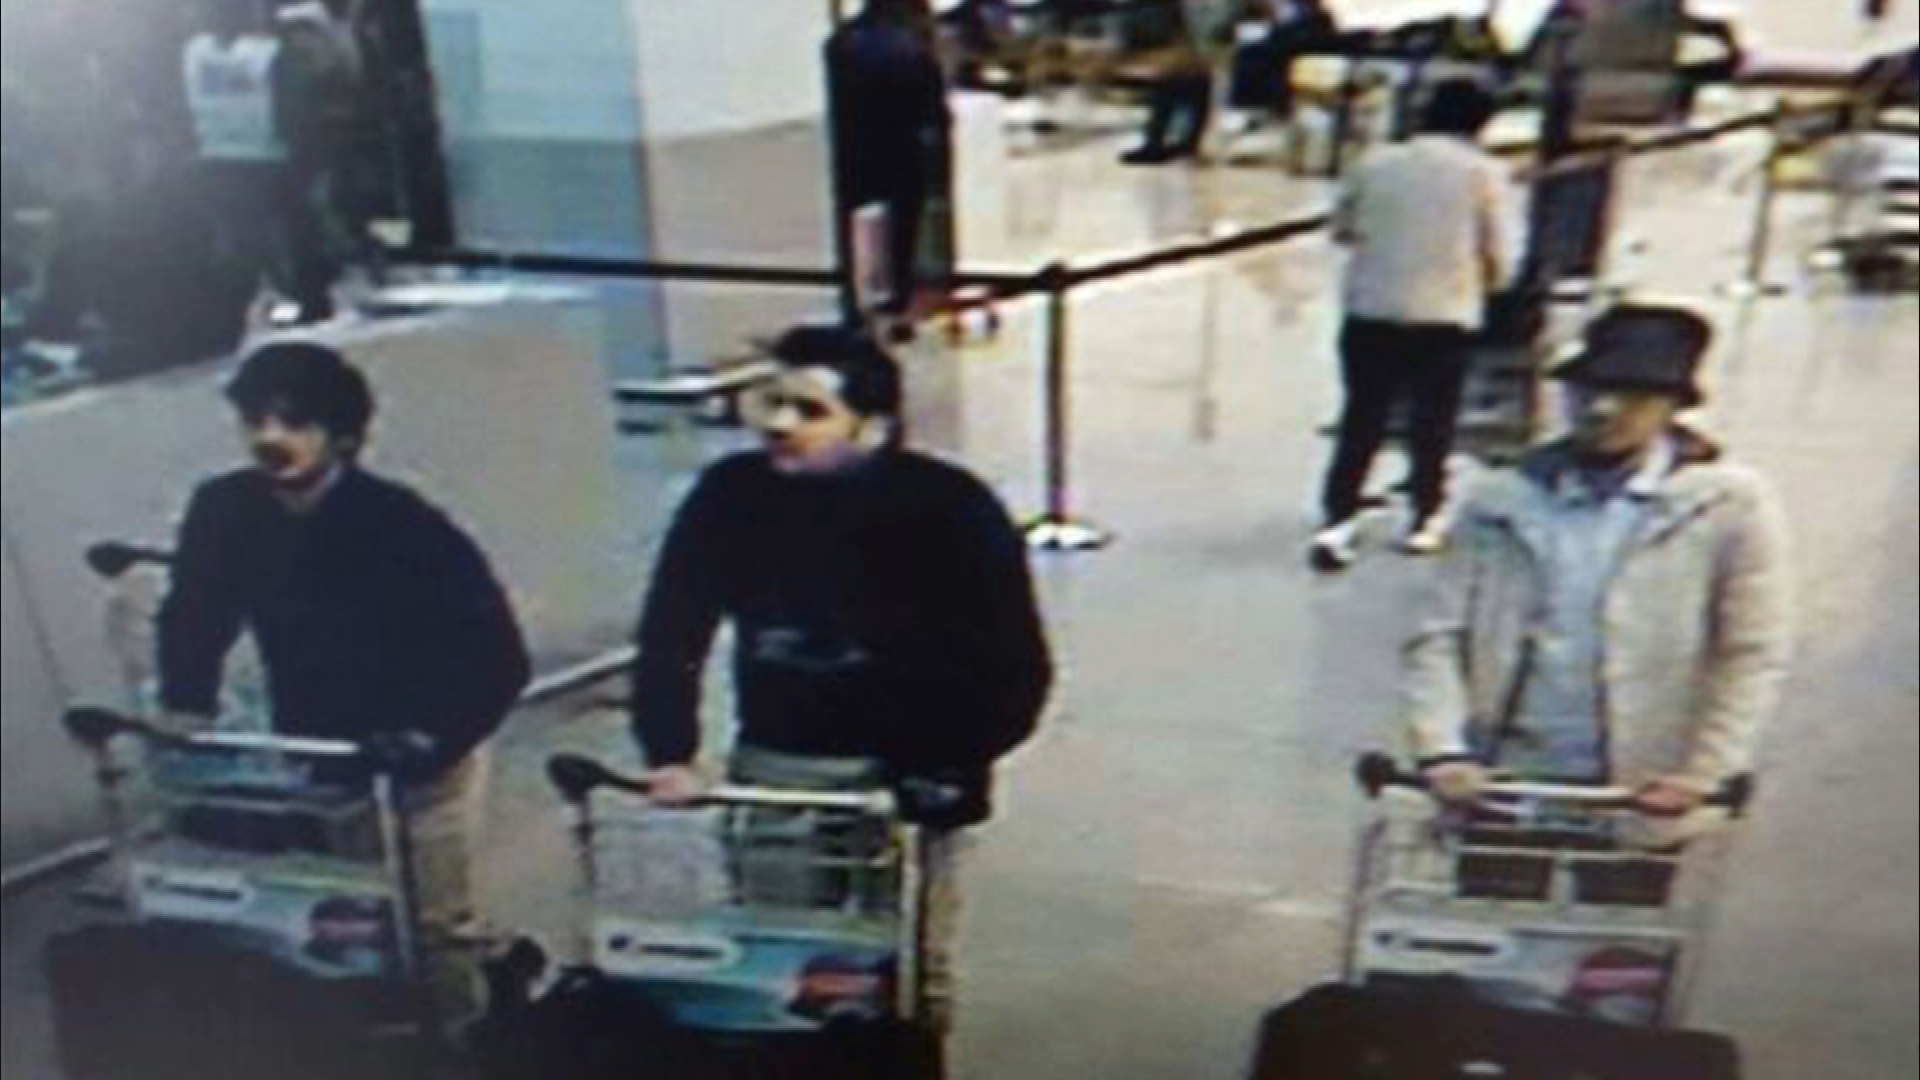 Mohamed Abrini came to be known as The Man in the Hat after authorities released security camera footage of three men wheeling bomb-laden suitcases into the Brussels airport.